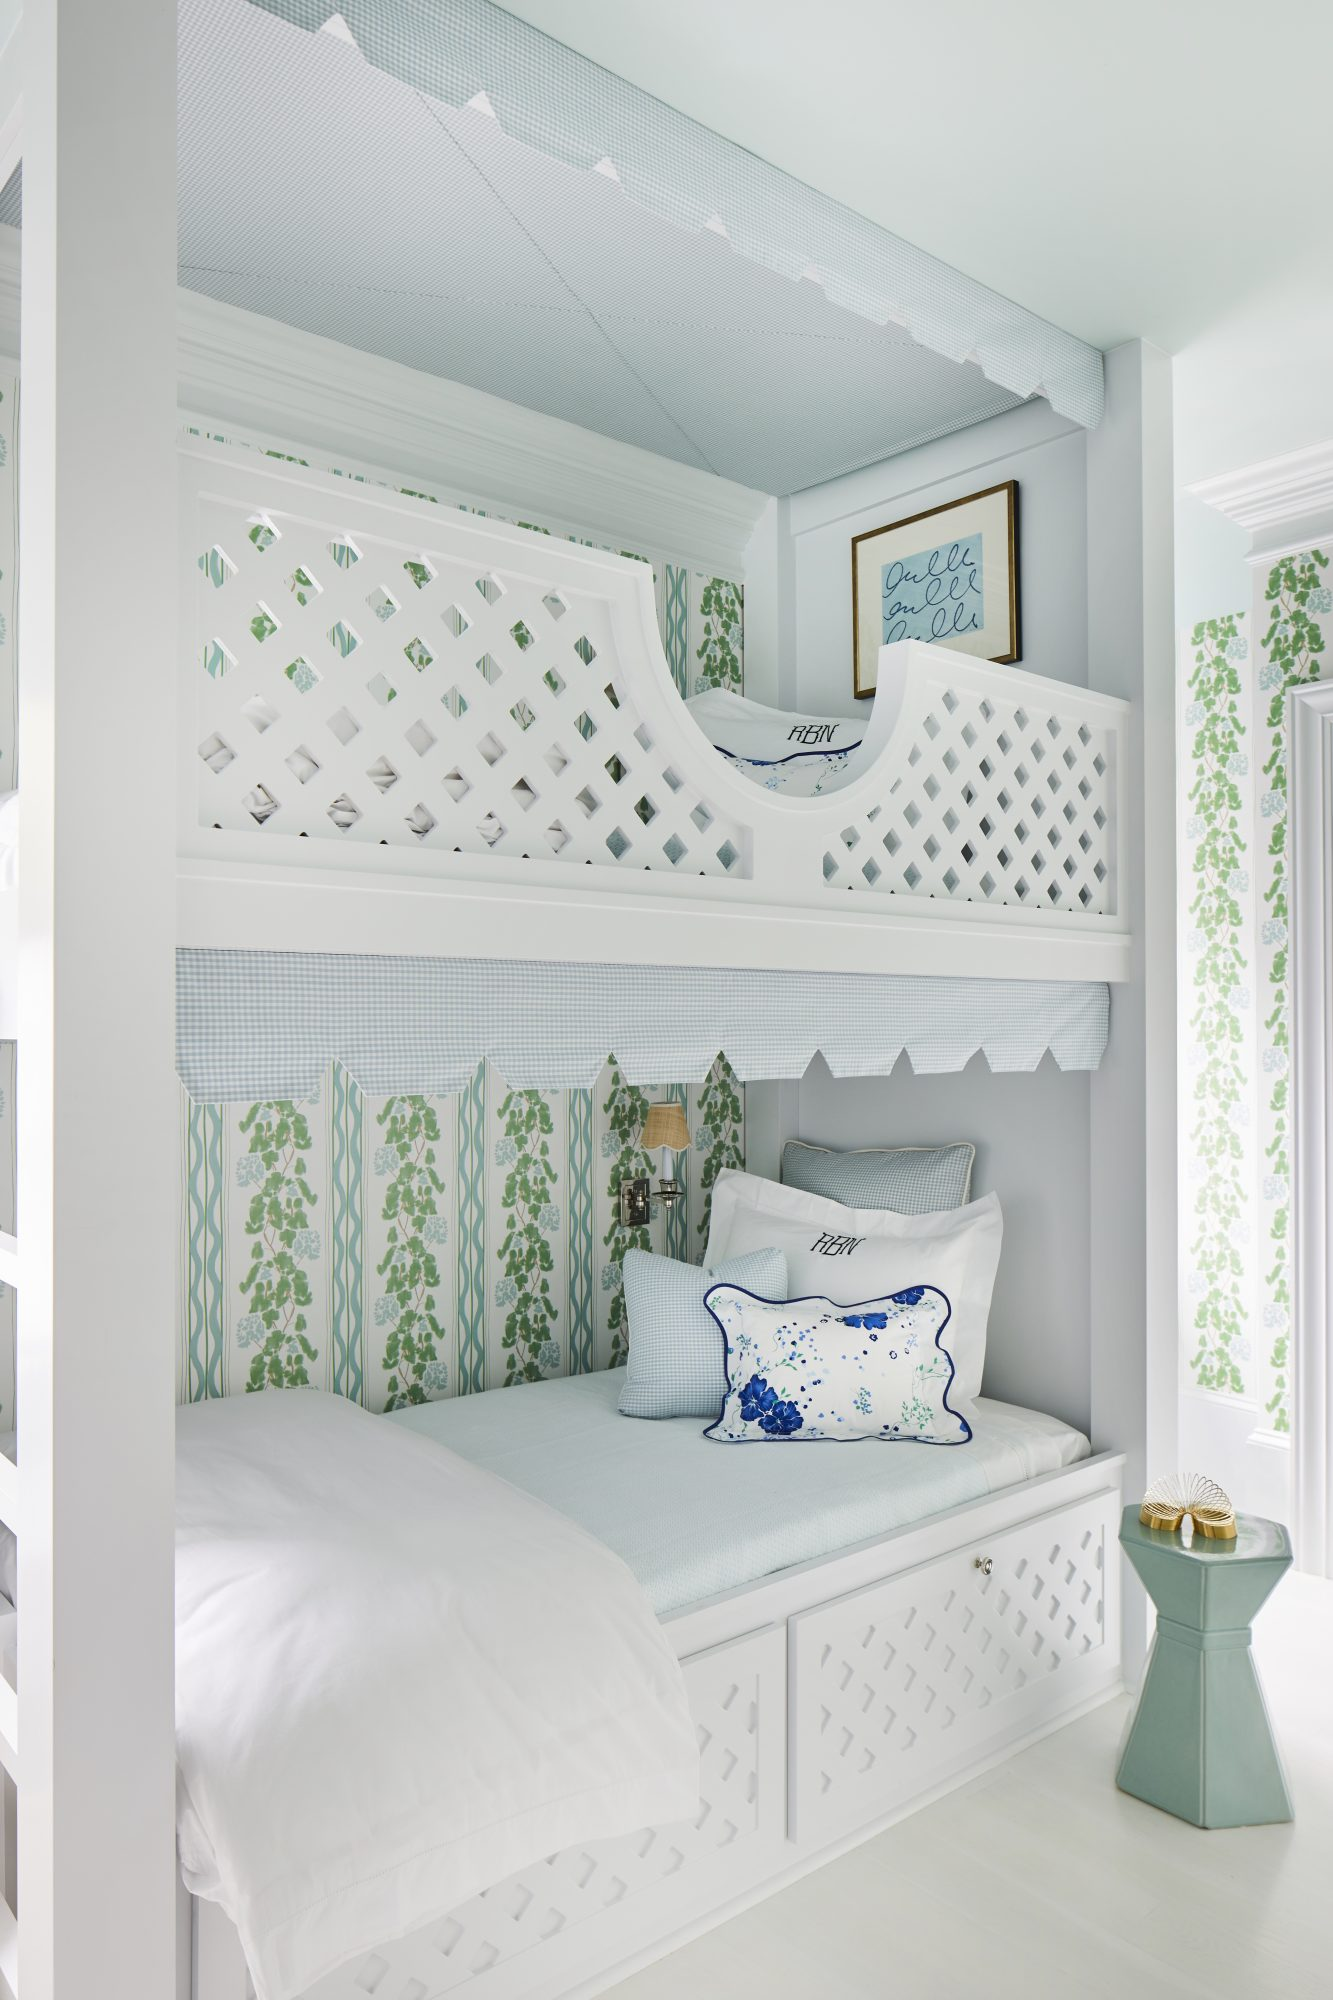 White Bunk Room with Green and Blue Accents